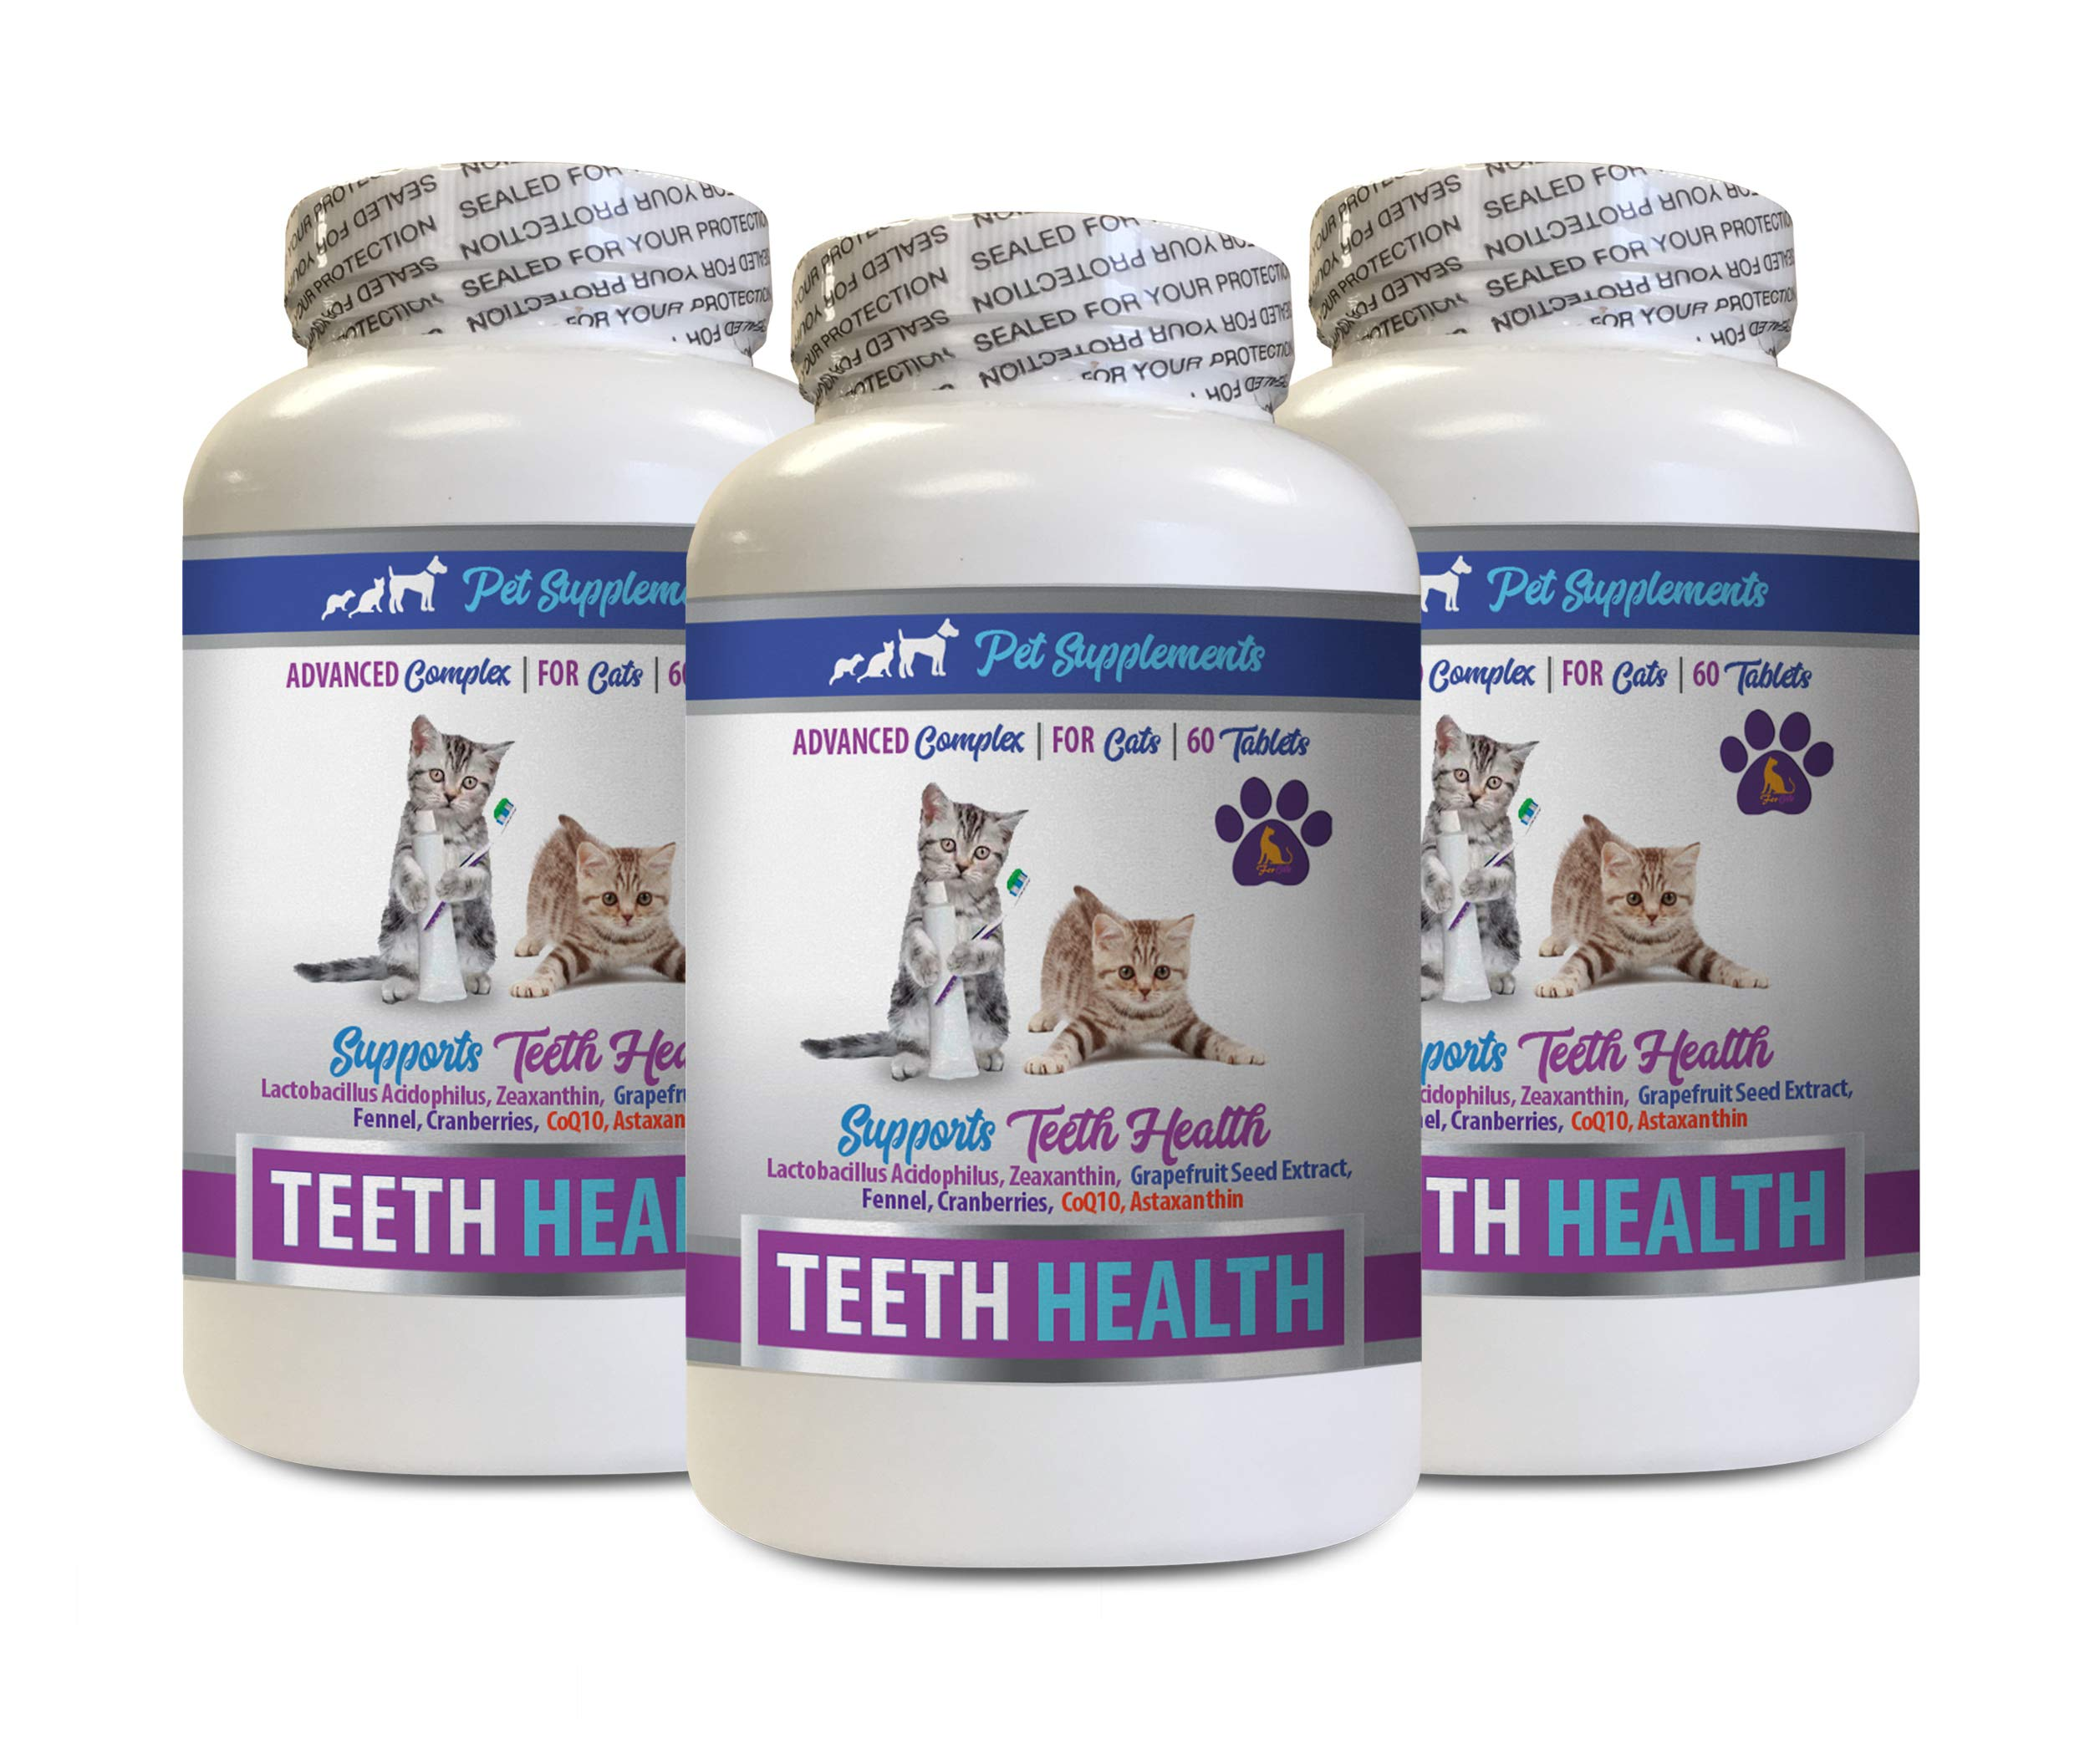 PET SUPPLEMENTS cat Bad Breathe - CAT Teeth Health - Advanced Mouth Health Complex - Immune Boost - Vitamin Supplement for Cats - 3 Bottles (180 Tablets) by PET SUPPLEMENTS